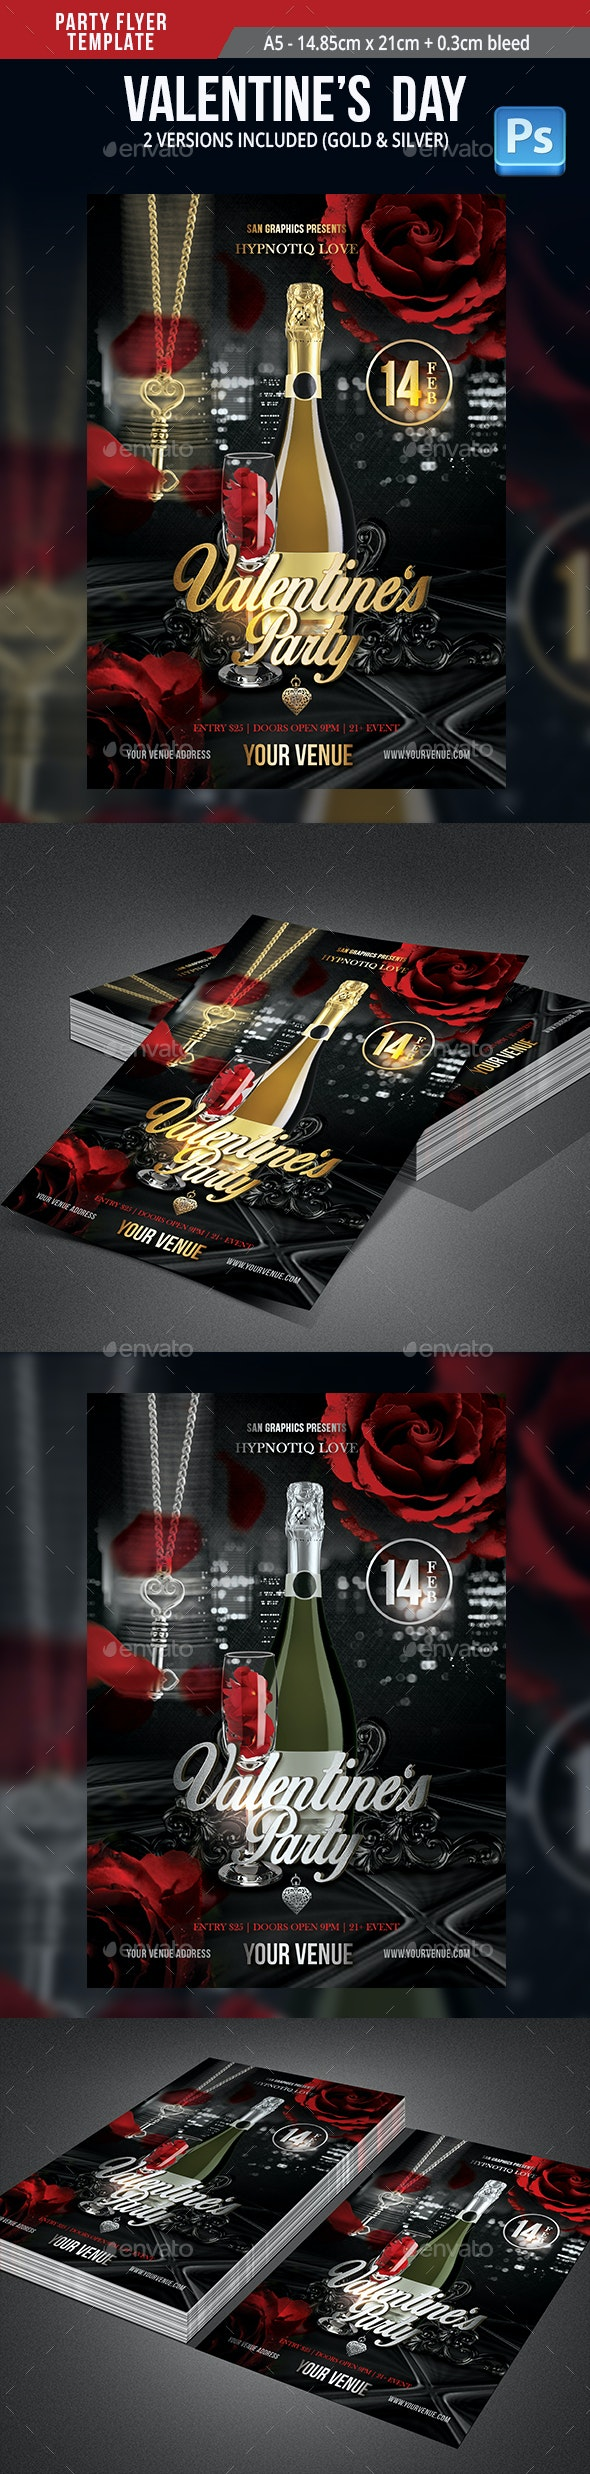 Hypnotic Valentine's Day Party Flyer Template - Flyers Print Templates